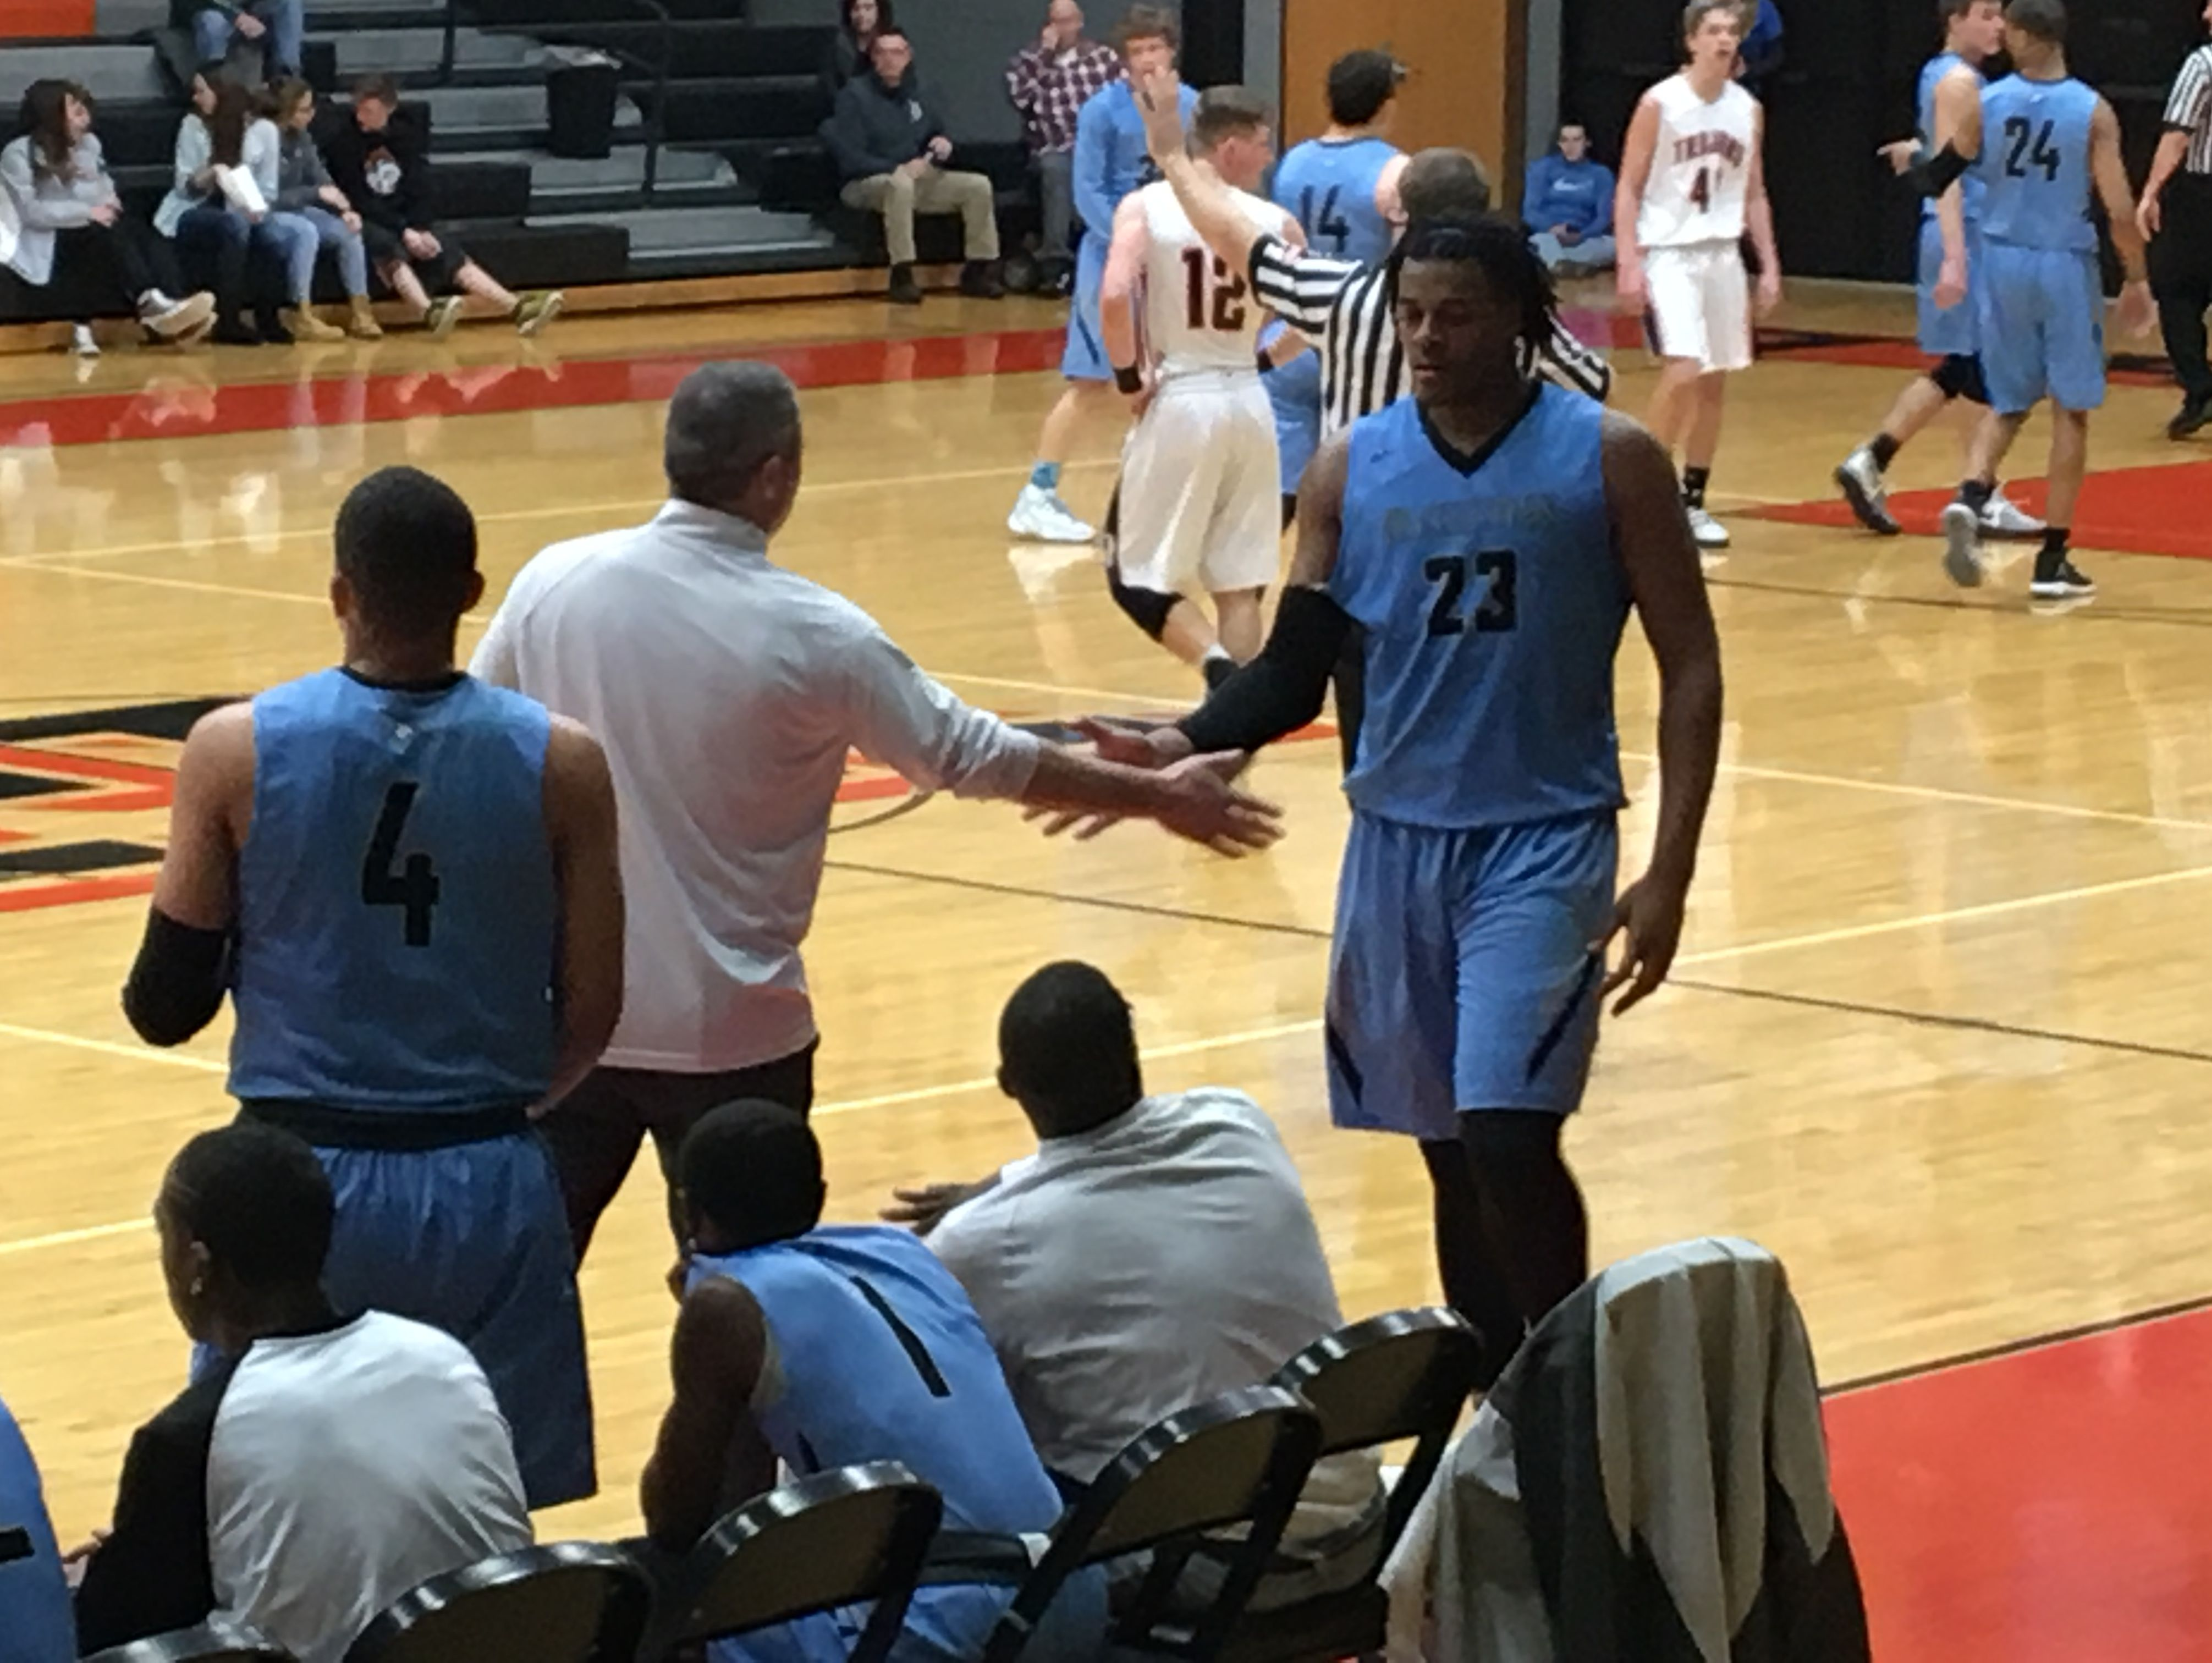 Xavier Tillman slaps five with Grand Rapids Christian head coach Mark Warners as he exits Friday's win over Thornapple-Kellogg in Middleville.